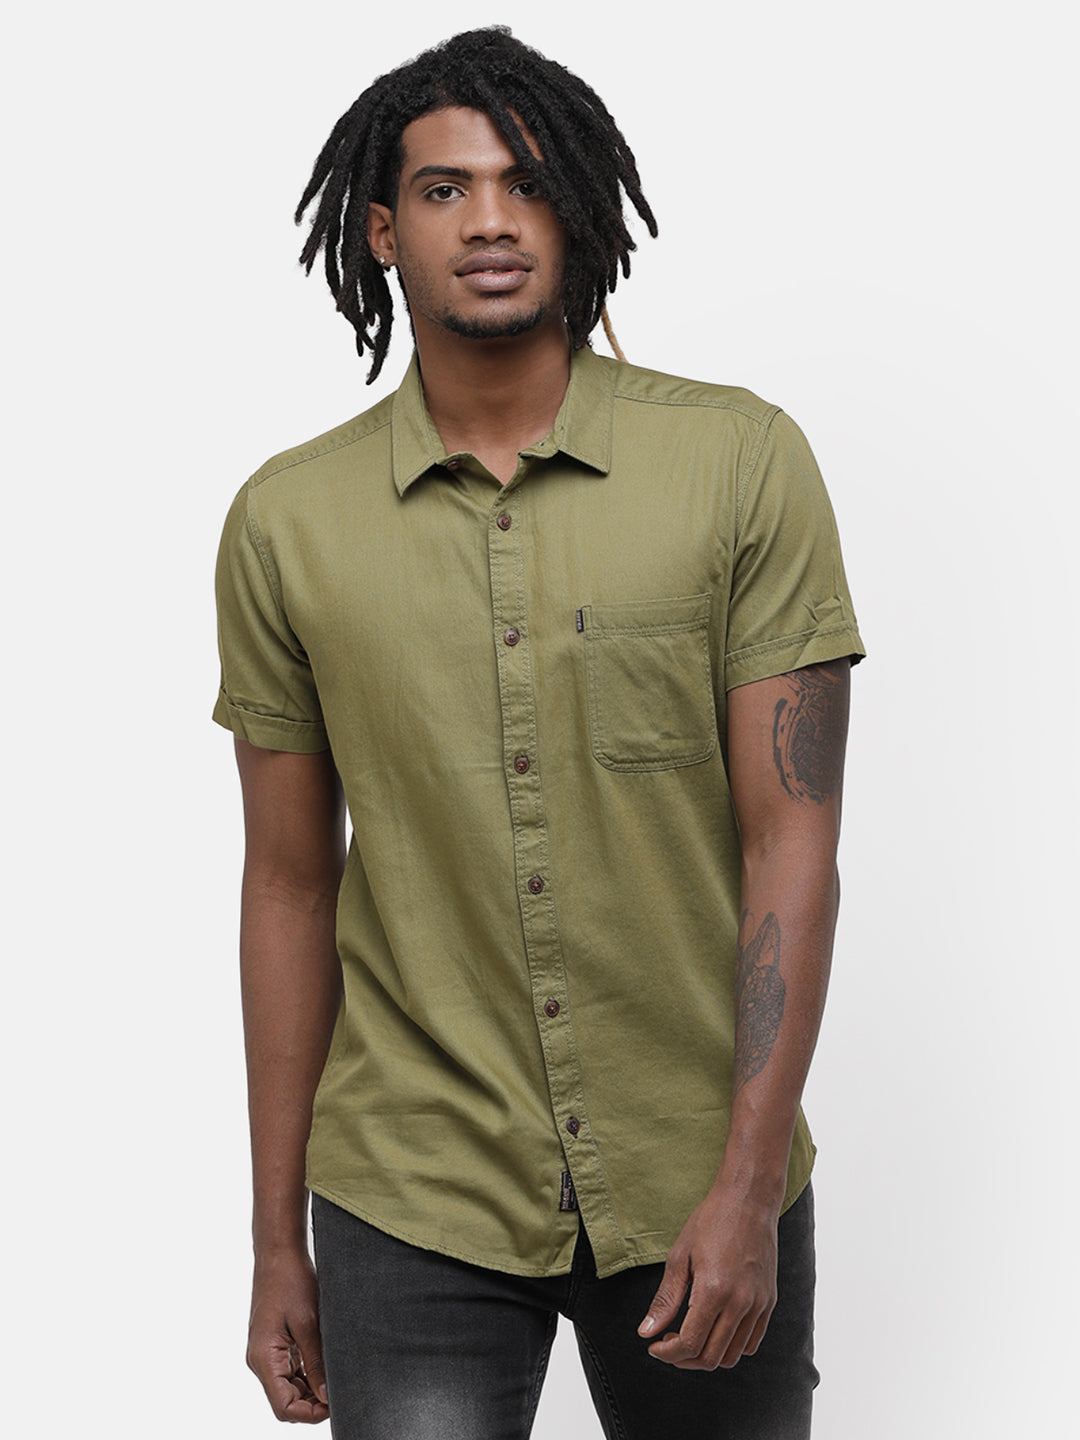 Men's Olive green half sleeve shirt